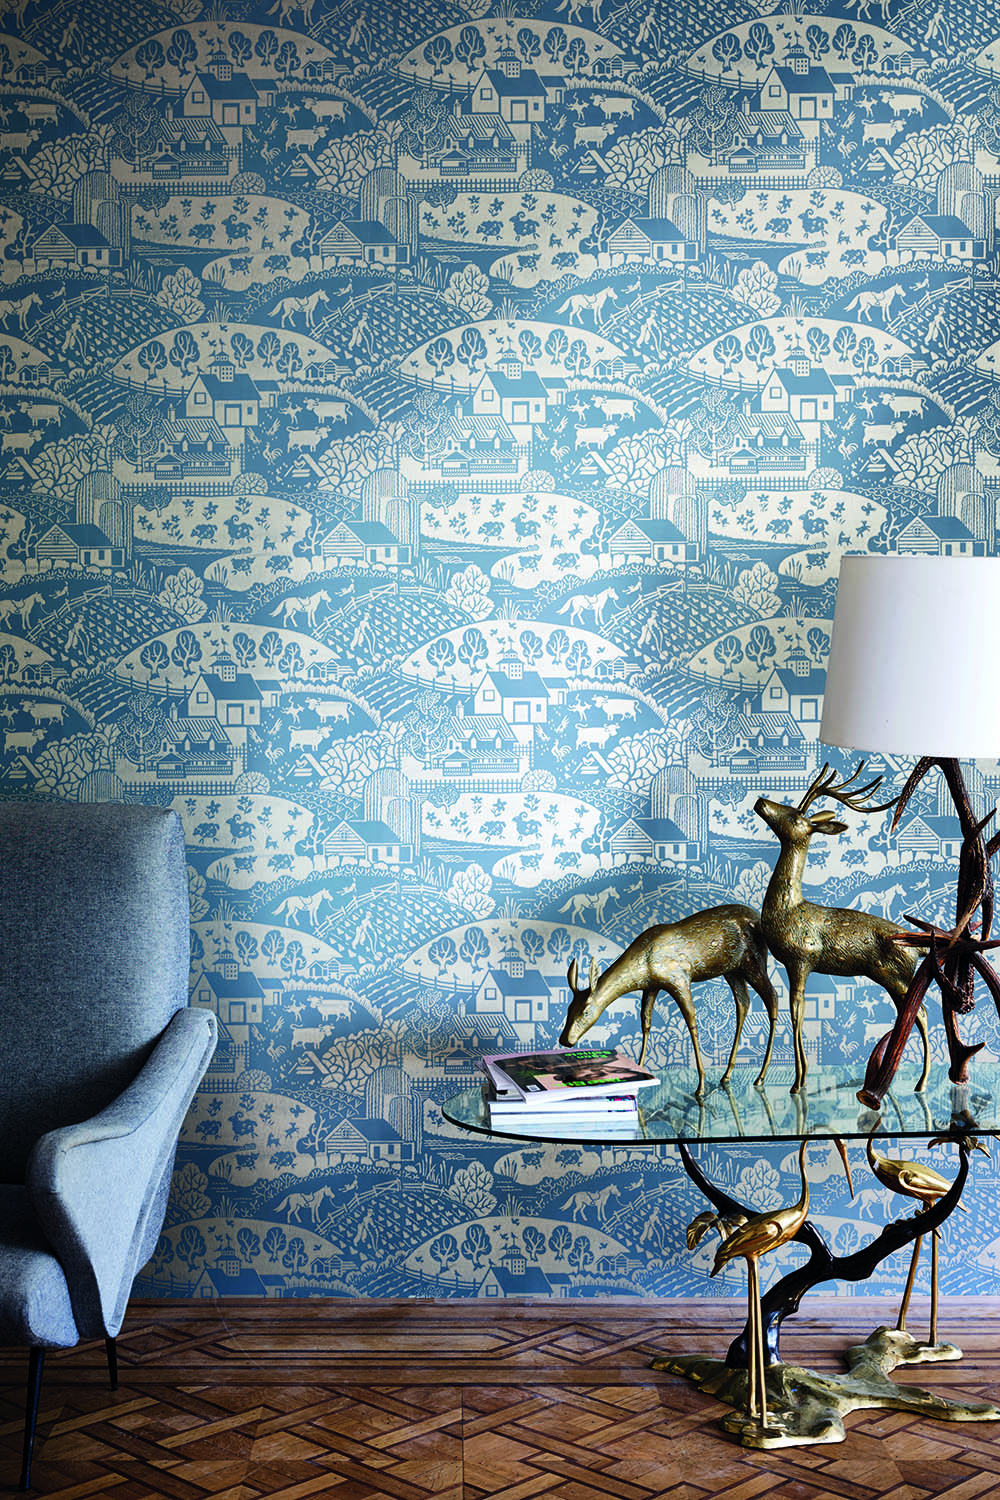 Farrow & Ball's New Wallpaper Line Is Old School Design-Meets-New School Colors